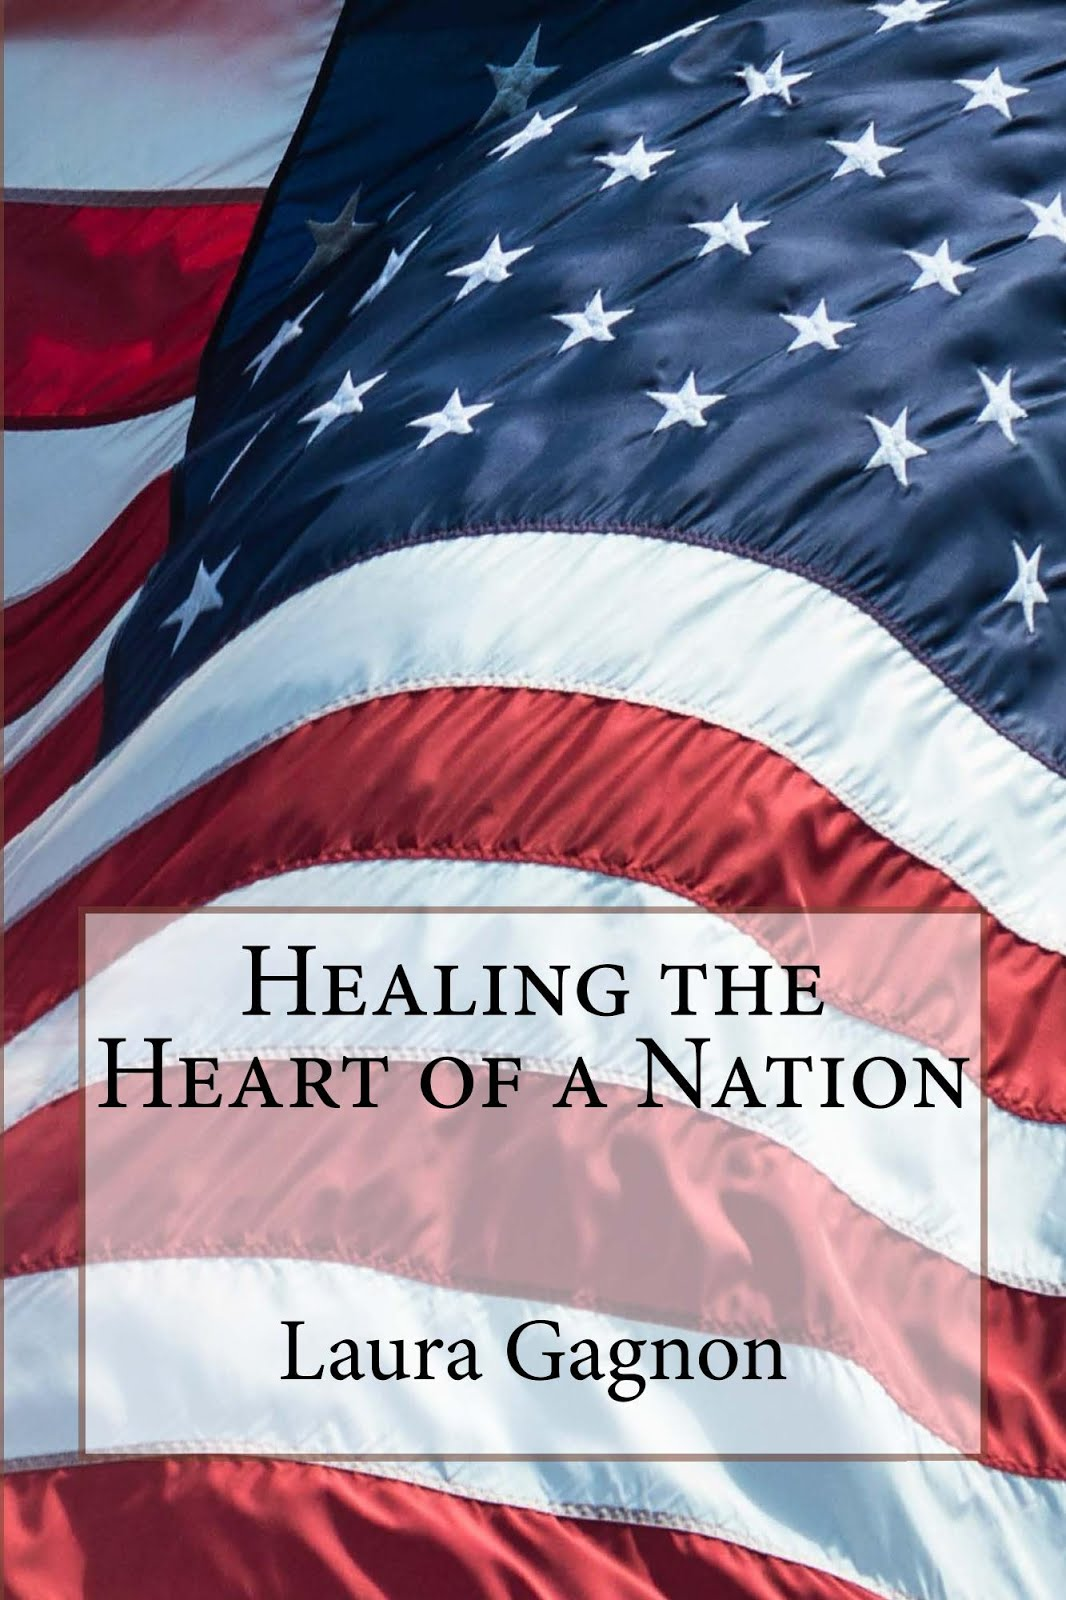 Healing the Heart of a Nation